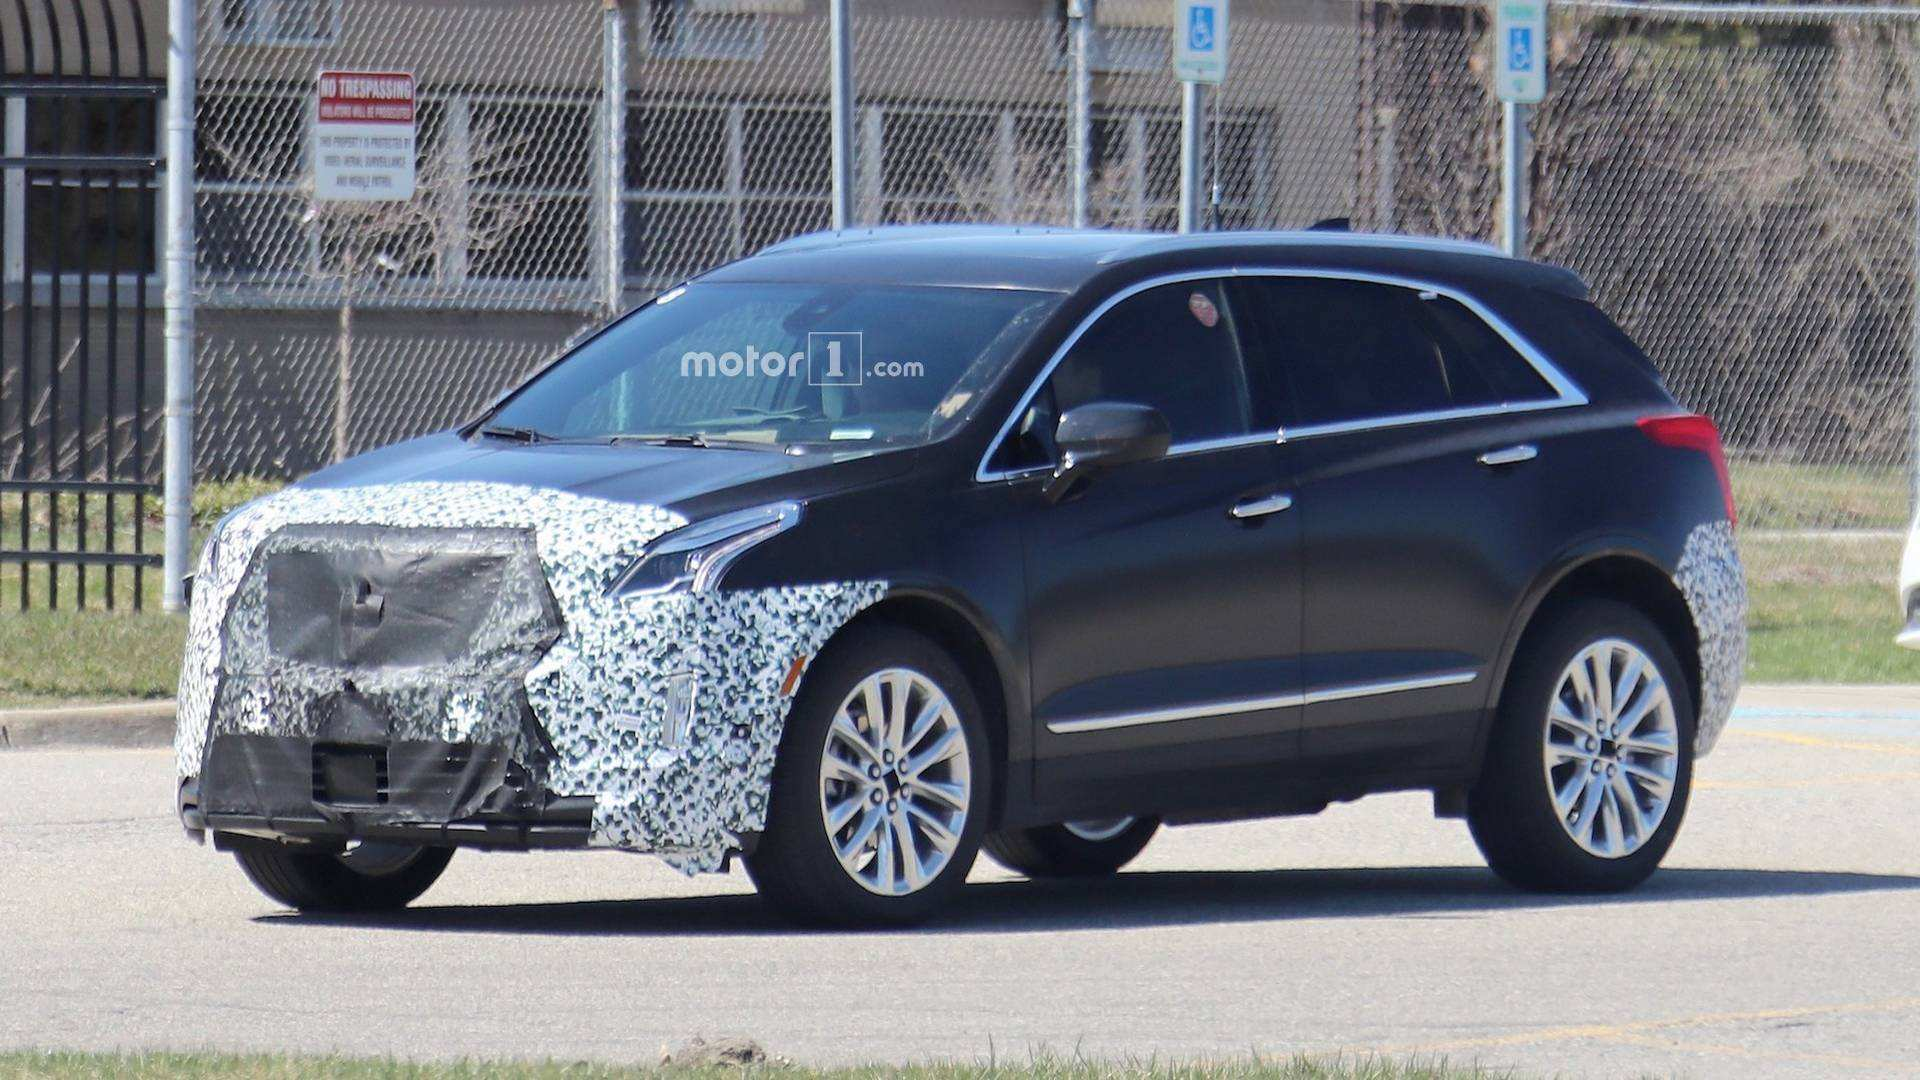 27 Concept of 2019 Spy Shots Cadillac Xt5 Review by 2019 Spy Shots Cadillac Xt5